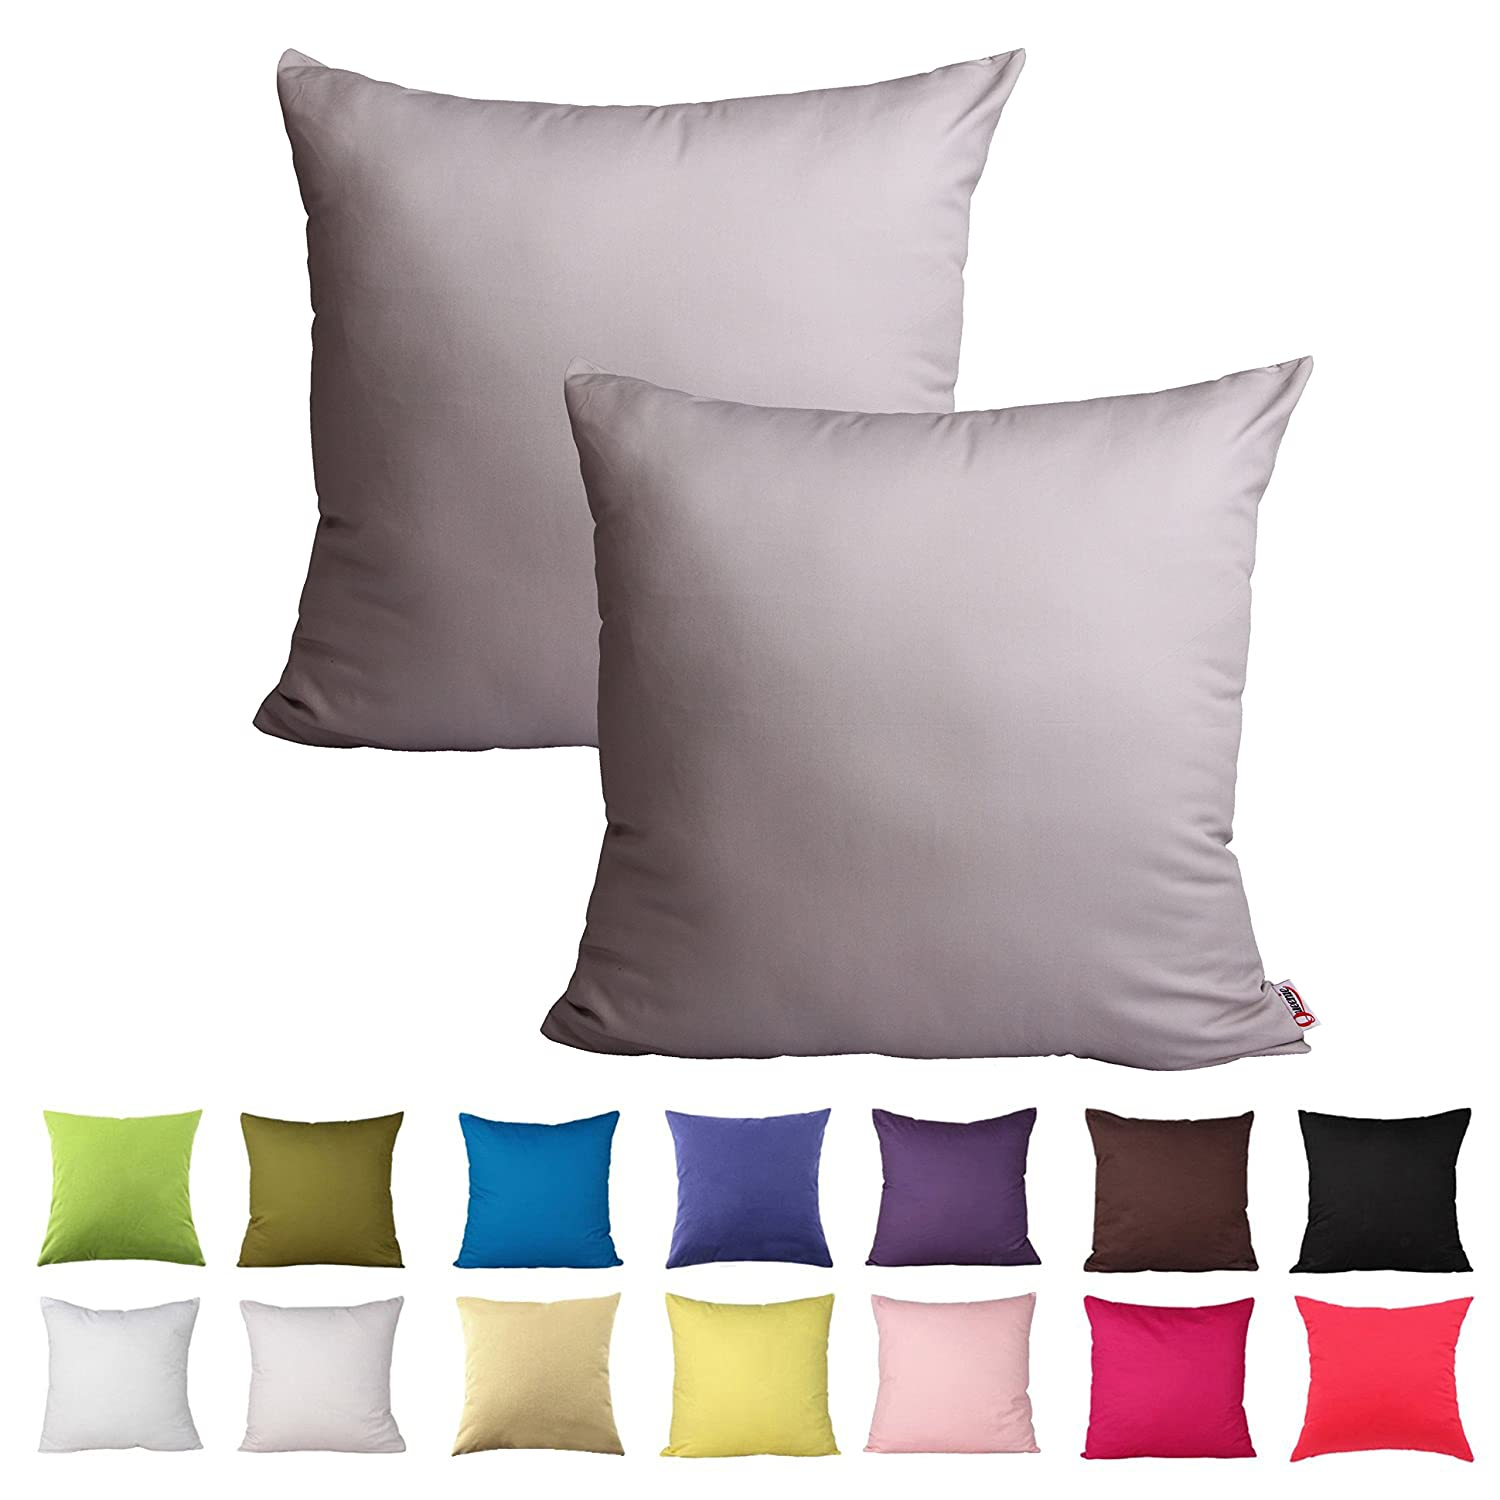 , Black 16 X 16 Inch 40 X 40 Cm 2 Pcs Solid Color Cotton Decorative Pillowcase Cushion Cover for Sofa Throw Pillow Case Available in 14 Colors /& 5 Sizes Queenie/®